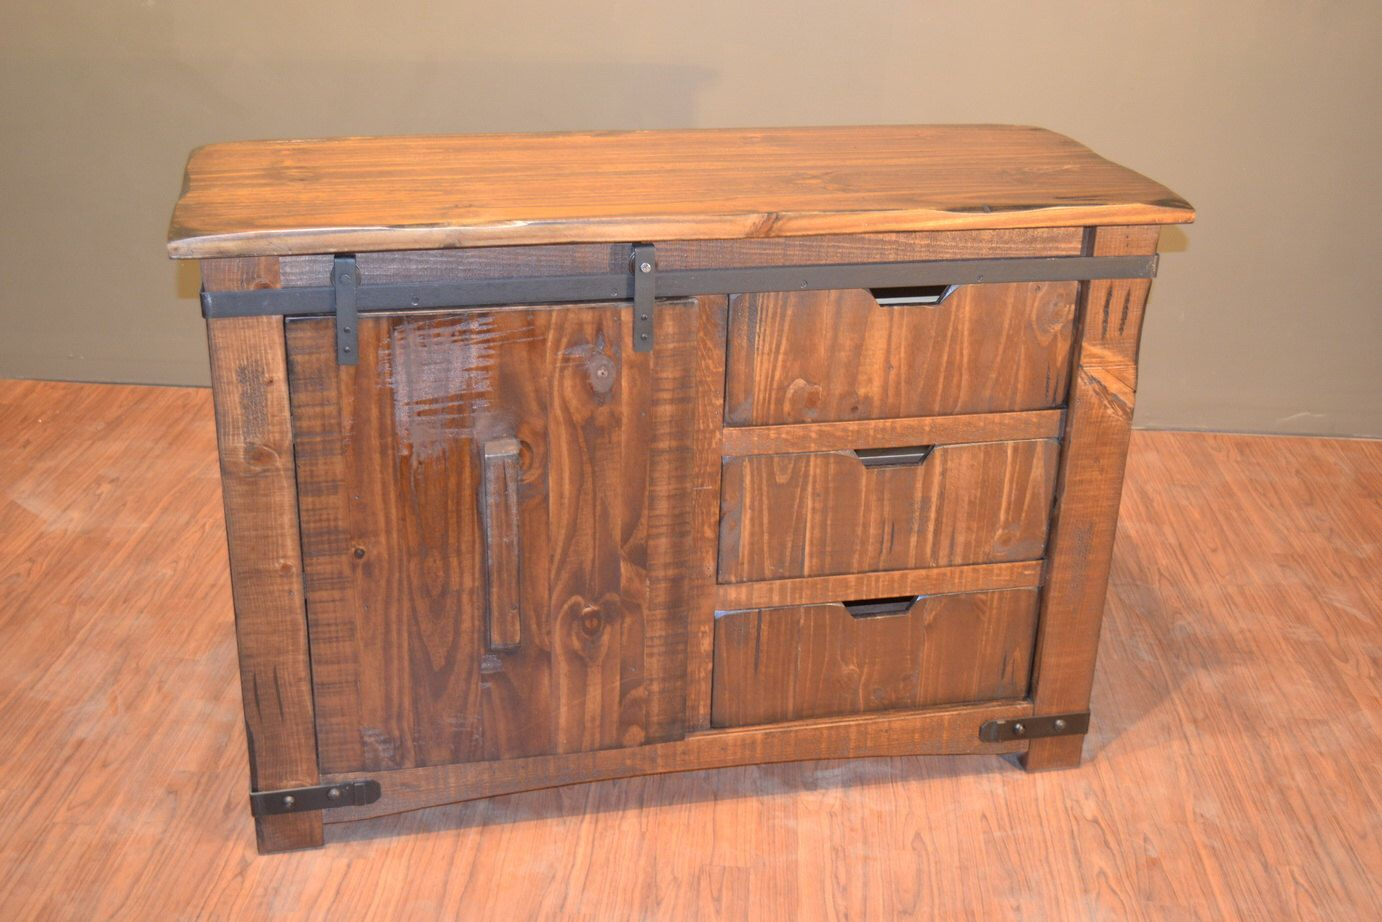 Rustic Solid Reclaimed Wood TV Stand Media Center With Sliding Door And  Drawers By RusticShop1 On